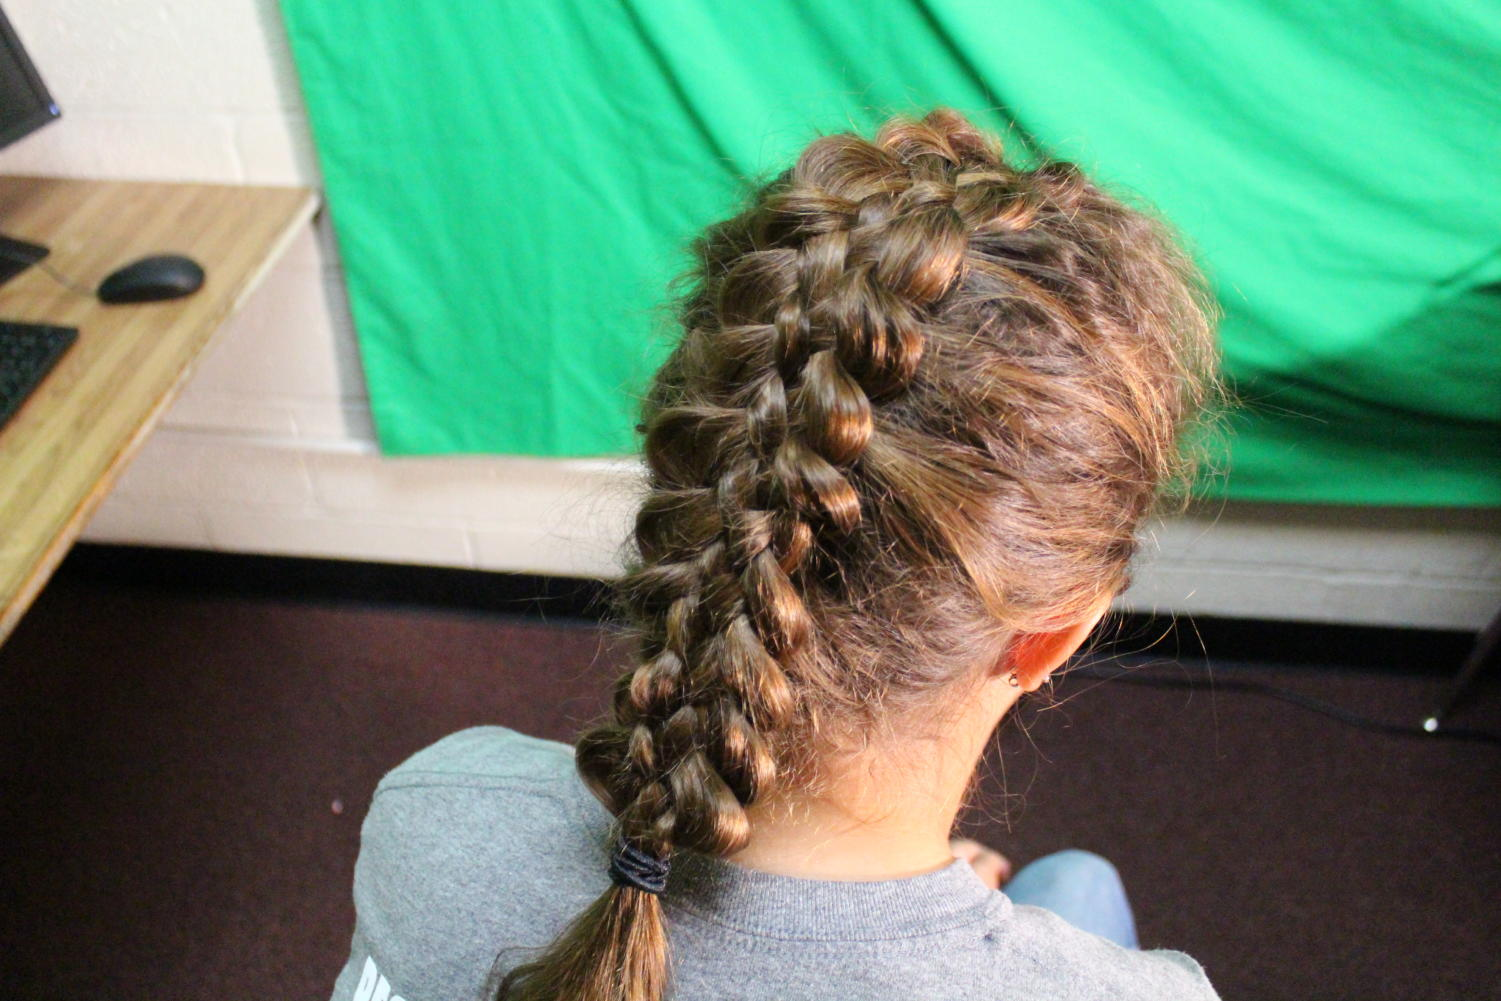 Eighth grader Brandi Tipton is used as a model for Staff Writer Saffron Eugea. Tipton is modeling the five strand braid.